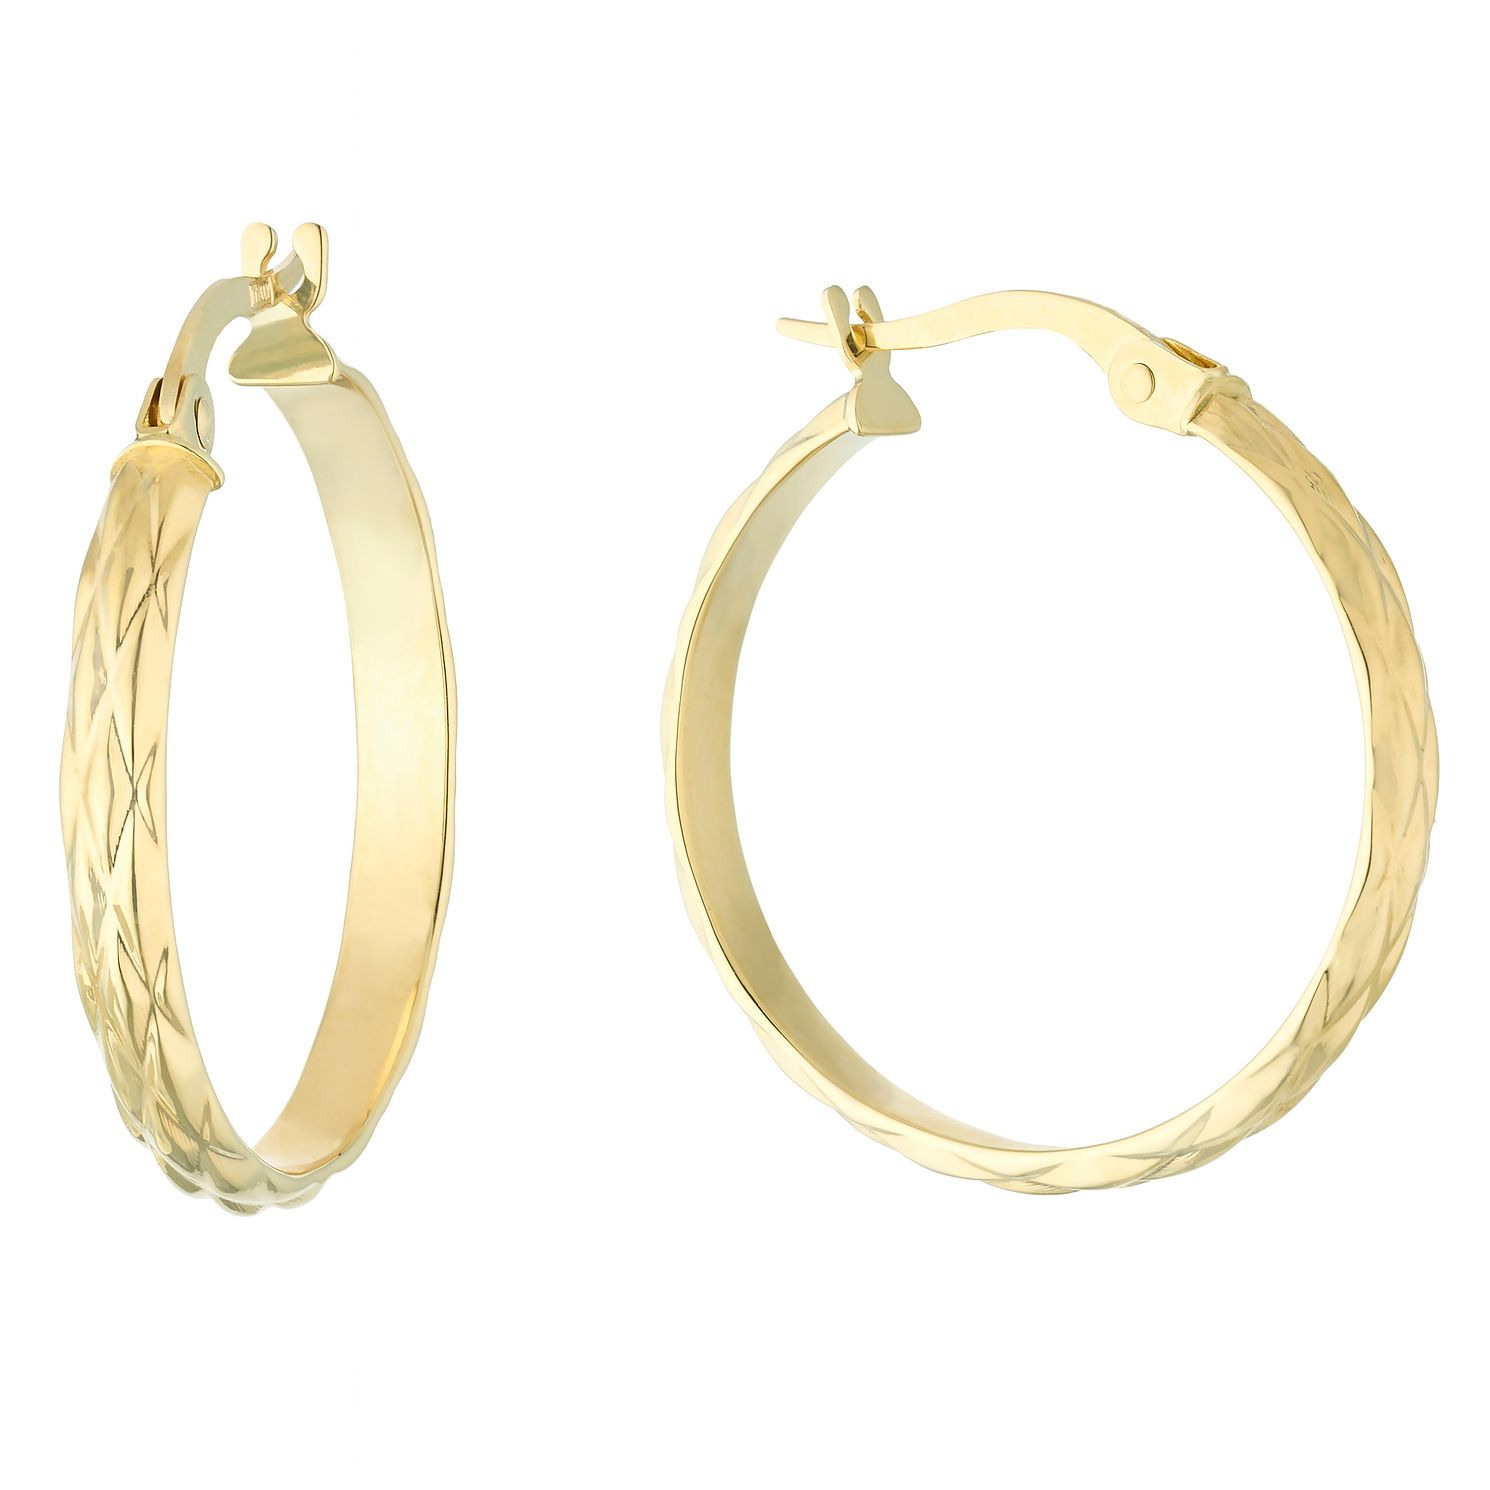 9ct Yellow Gold Criss Cross Creole Hoop Earrings - Product number 5068819